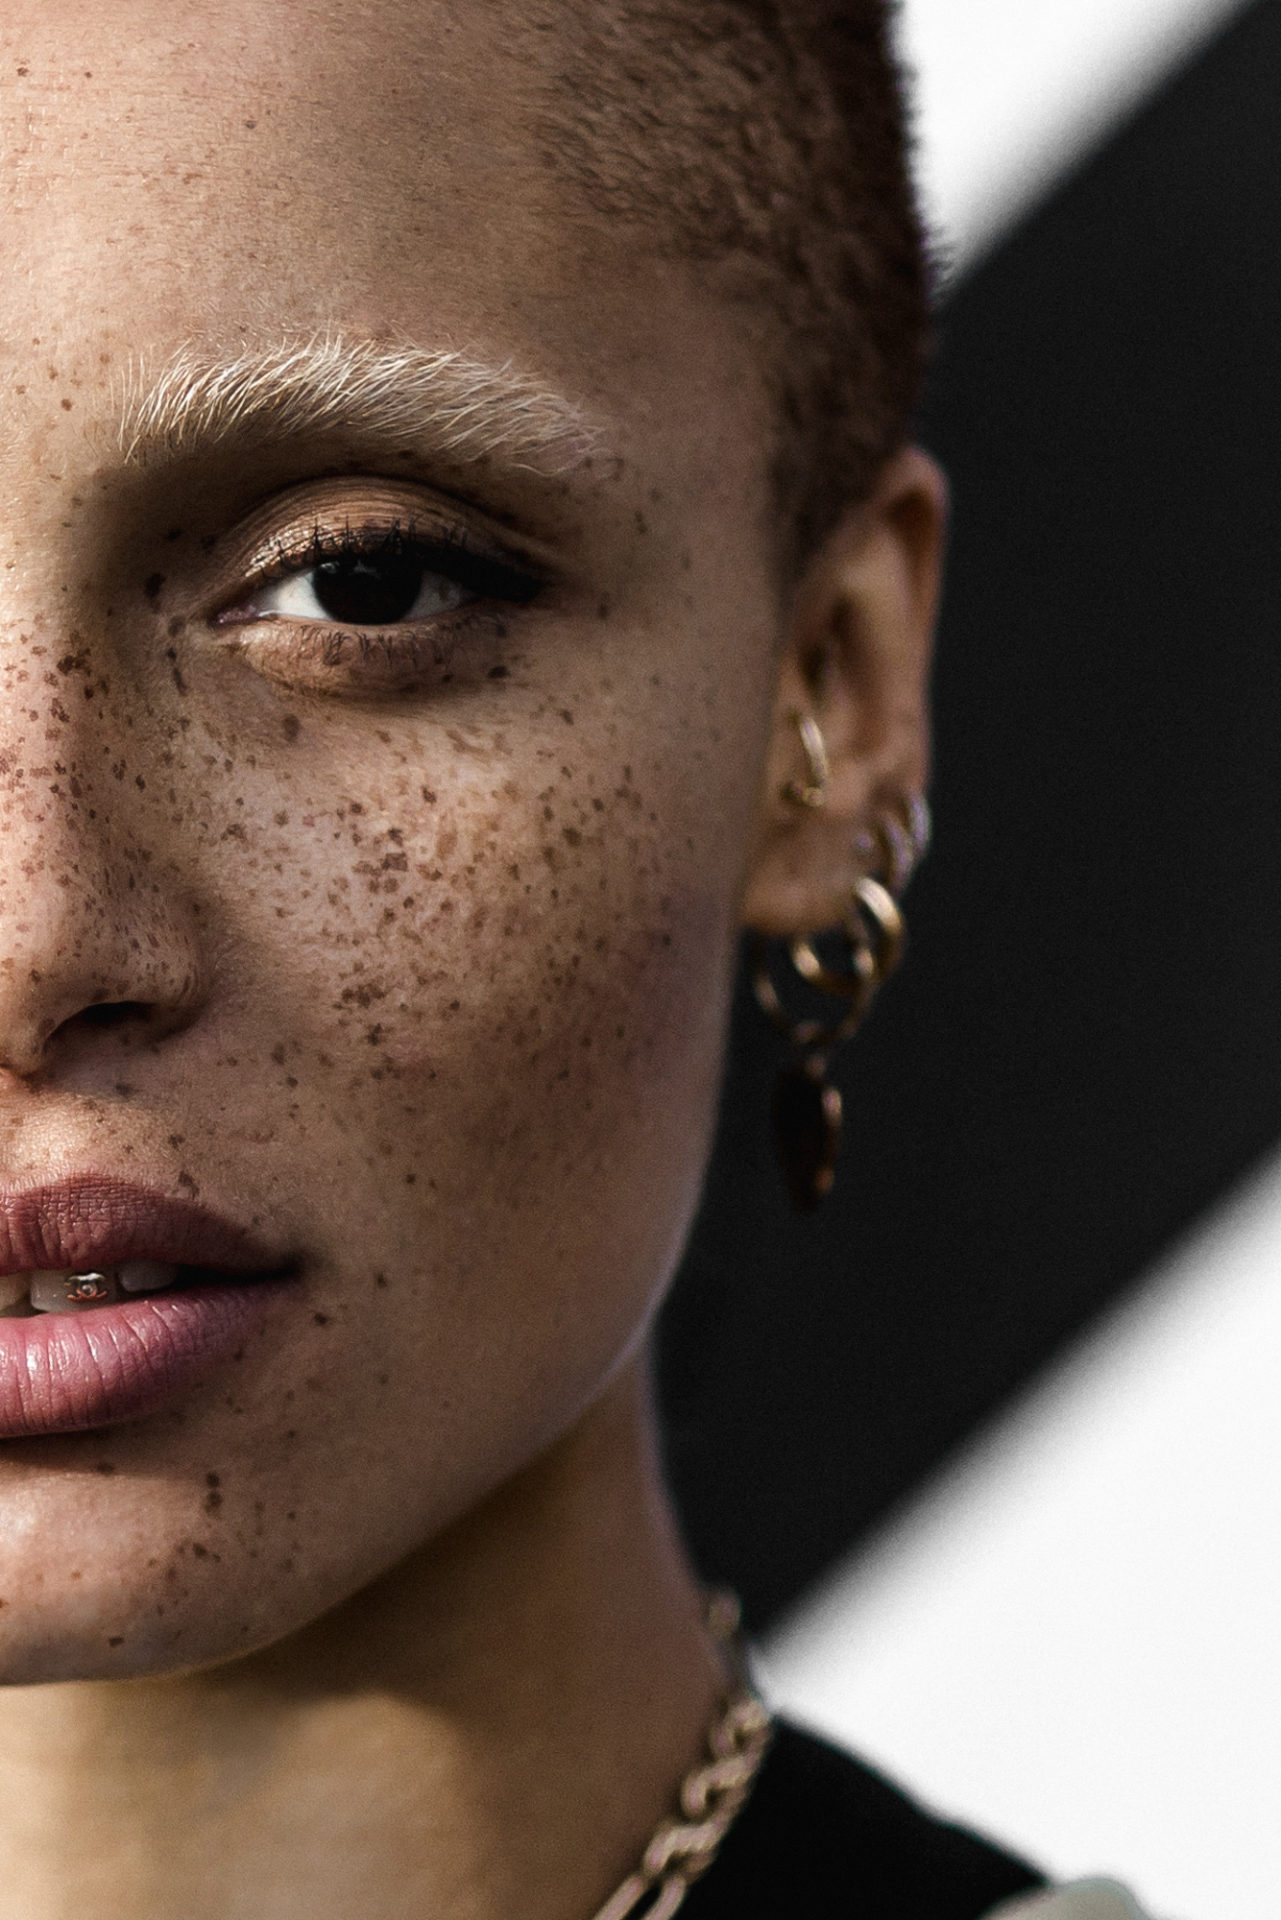 Portrait of Adwoa Aboah at the Bread and Butter Pre Event in Berlin